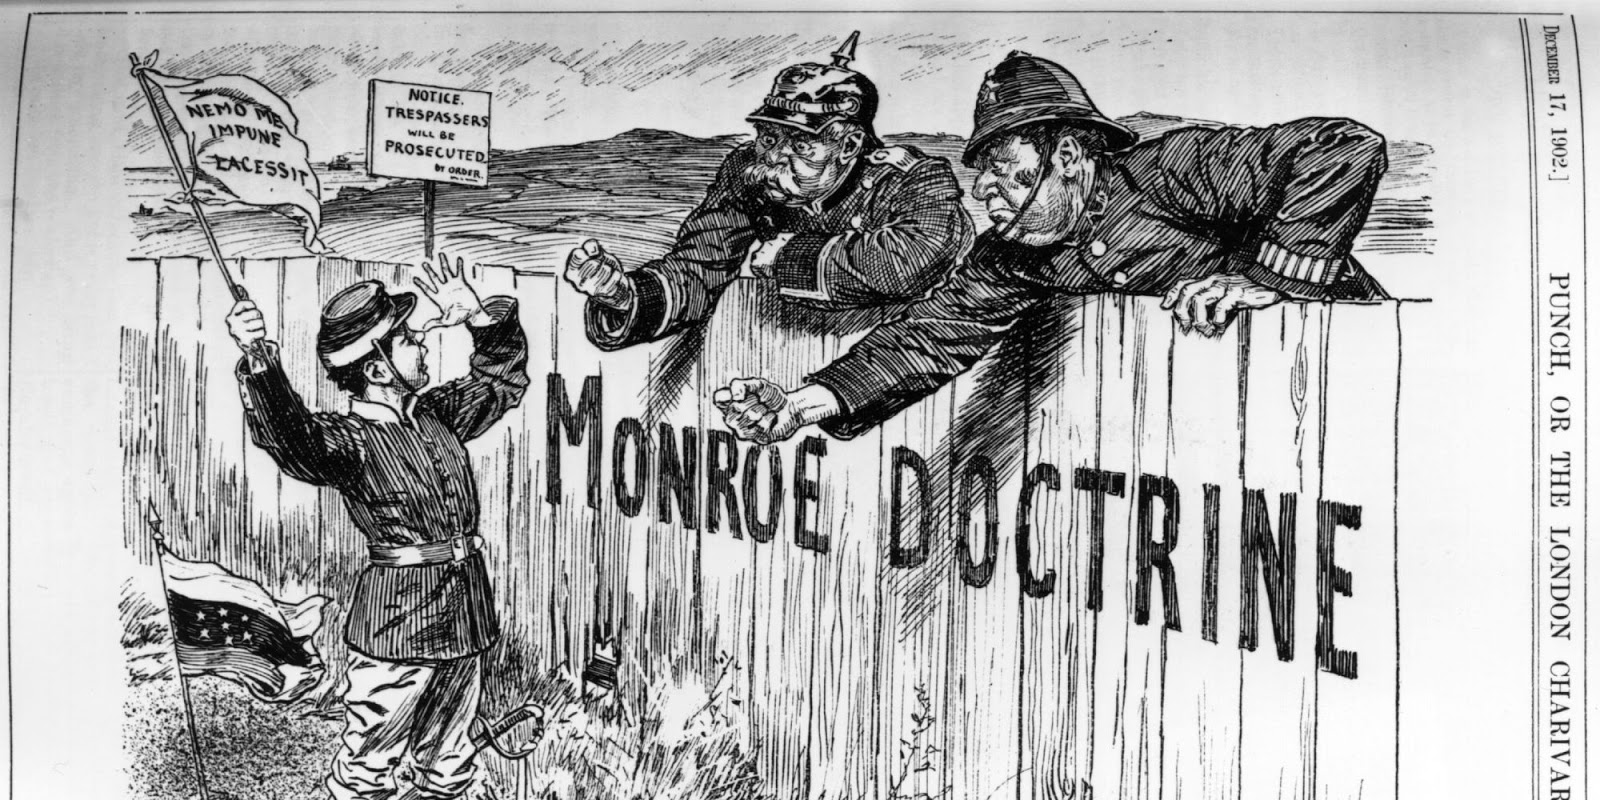 Political Cartoon Project: The Monroe Doctrine